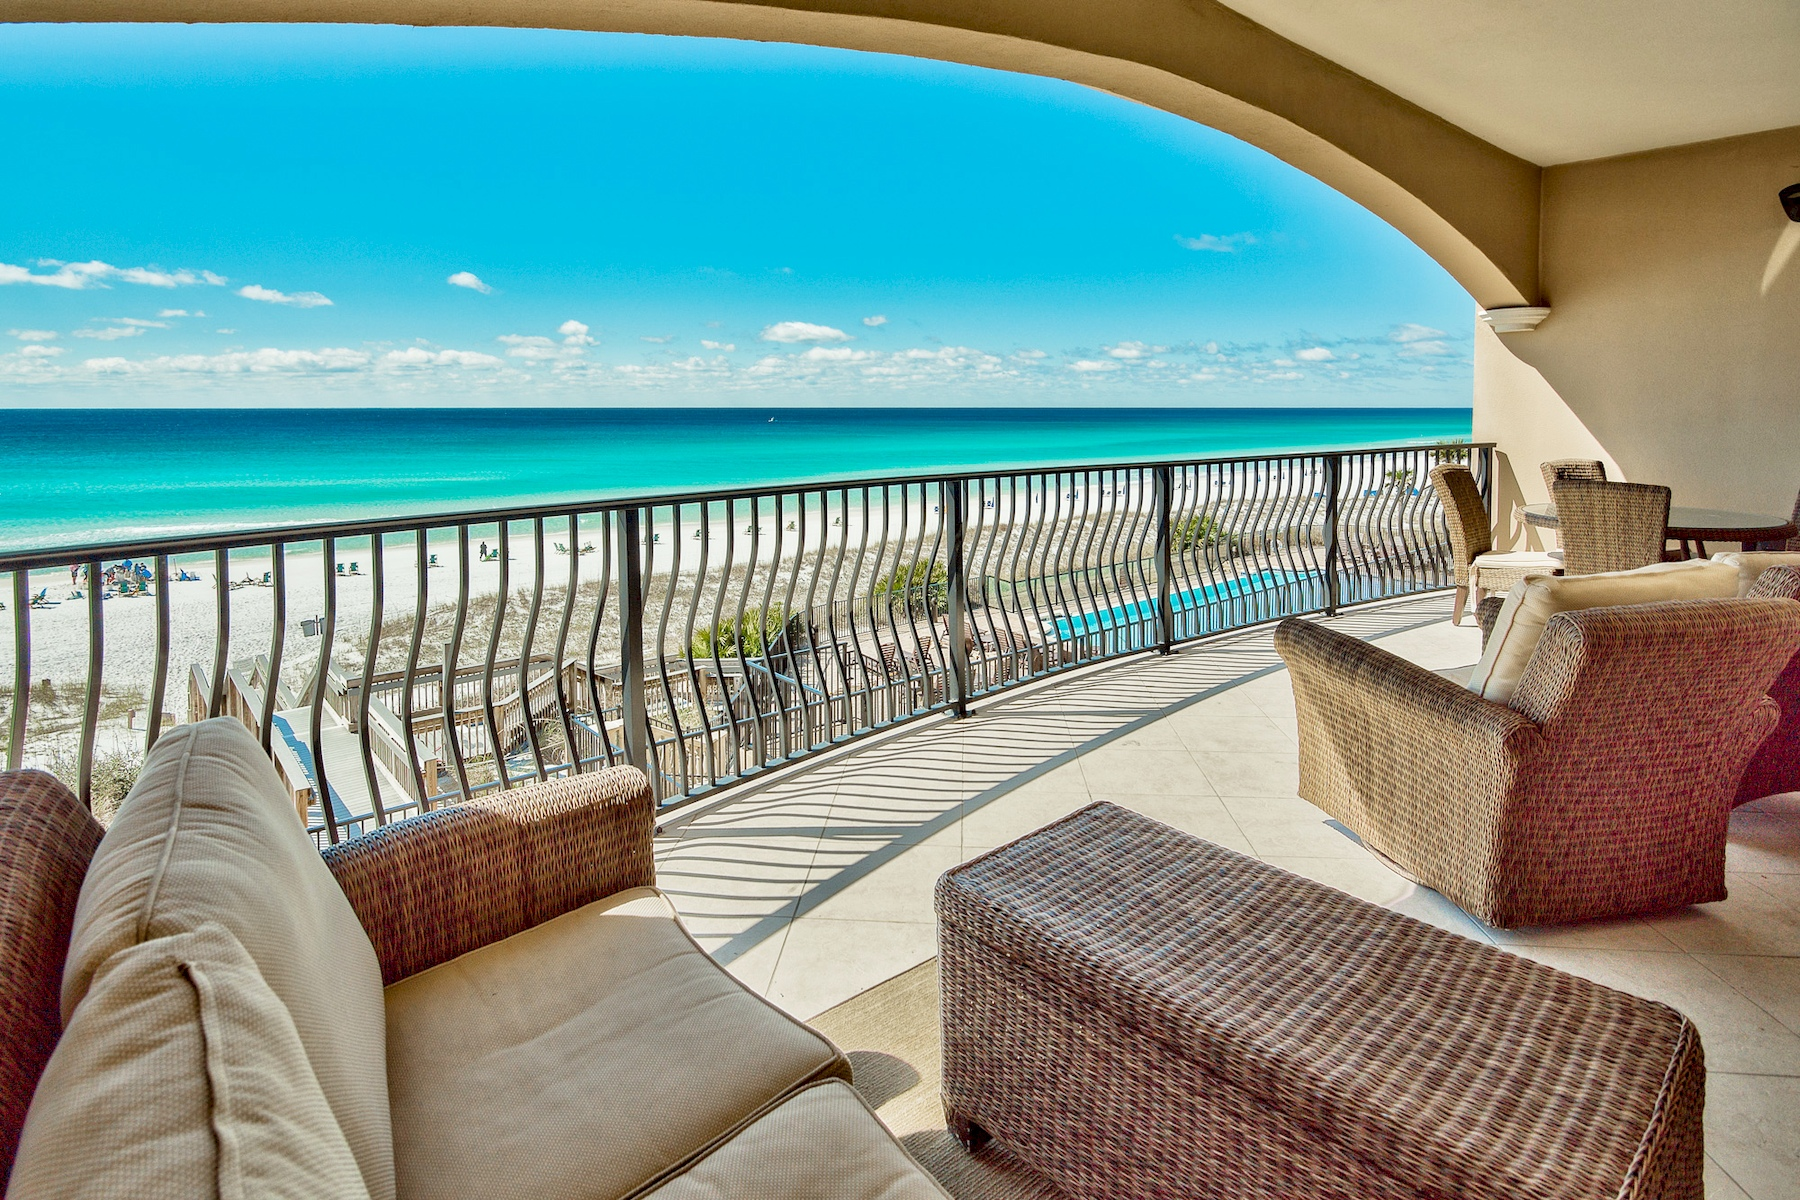 Condominium for Sale at Gulf-front Condo on 2nd Floor of Desirable Waterfront Building 3016 Scenic Highway 98 204, Villa Coyaba, Destin, Florida, 32541 United States